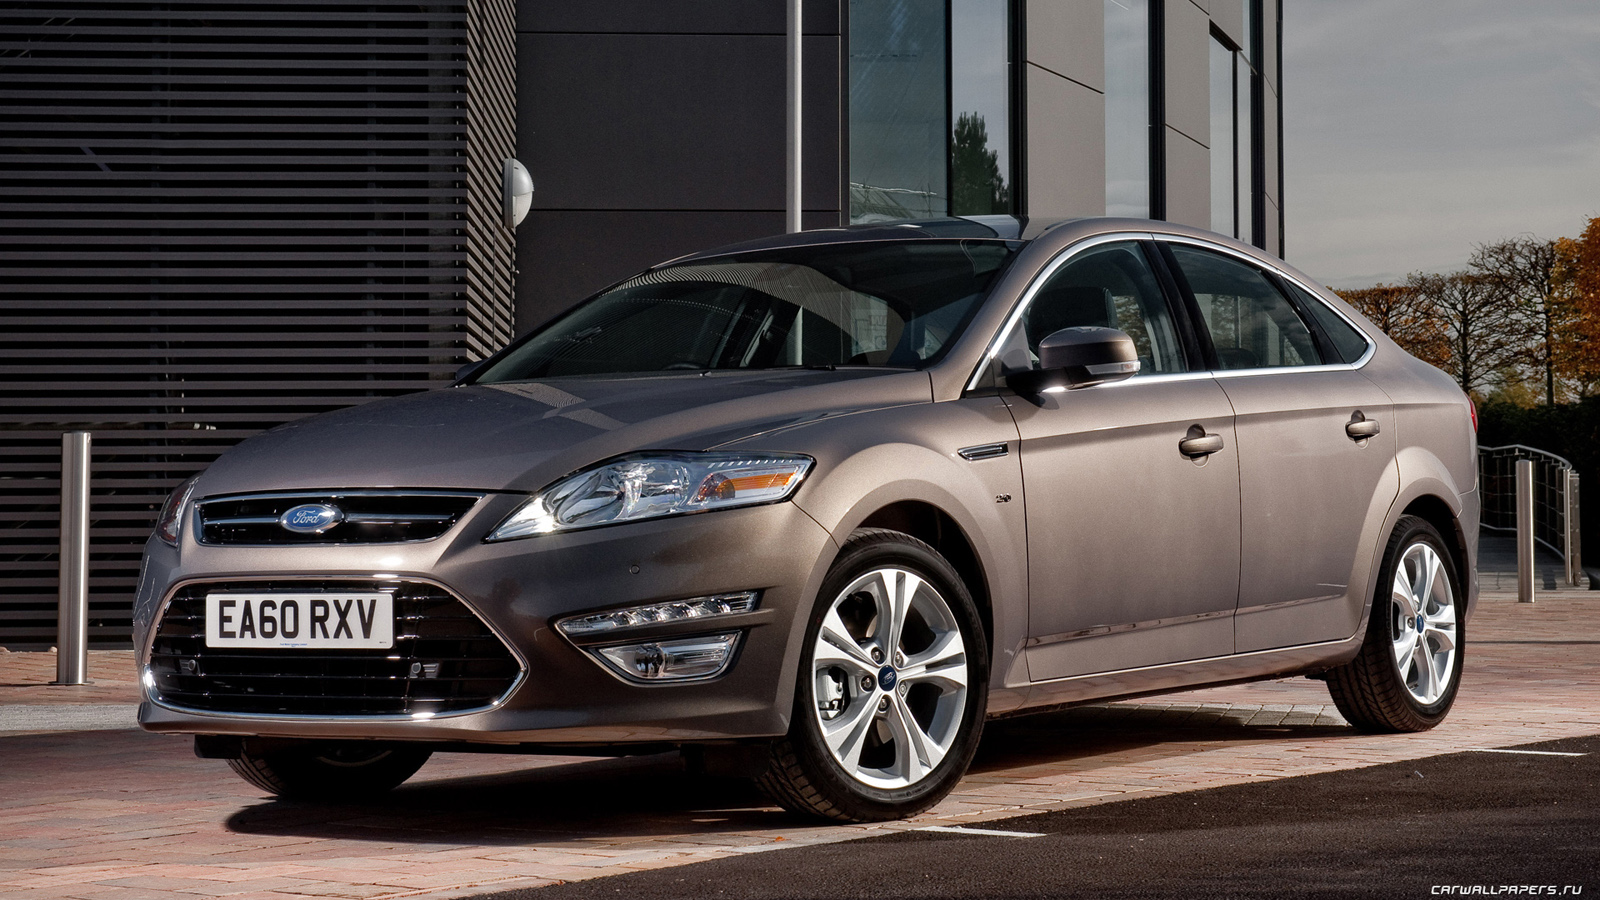 Ford-Mondeo-Hatchback-UK-spec-2010-1600x900-007.jpg ...